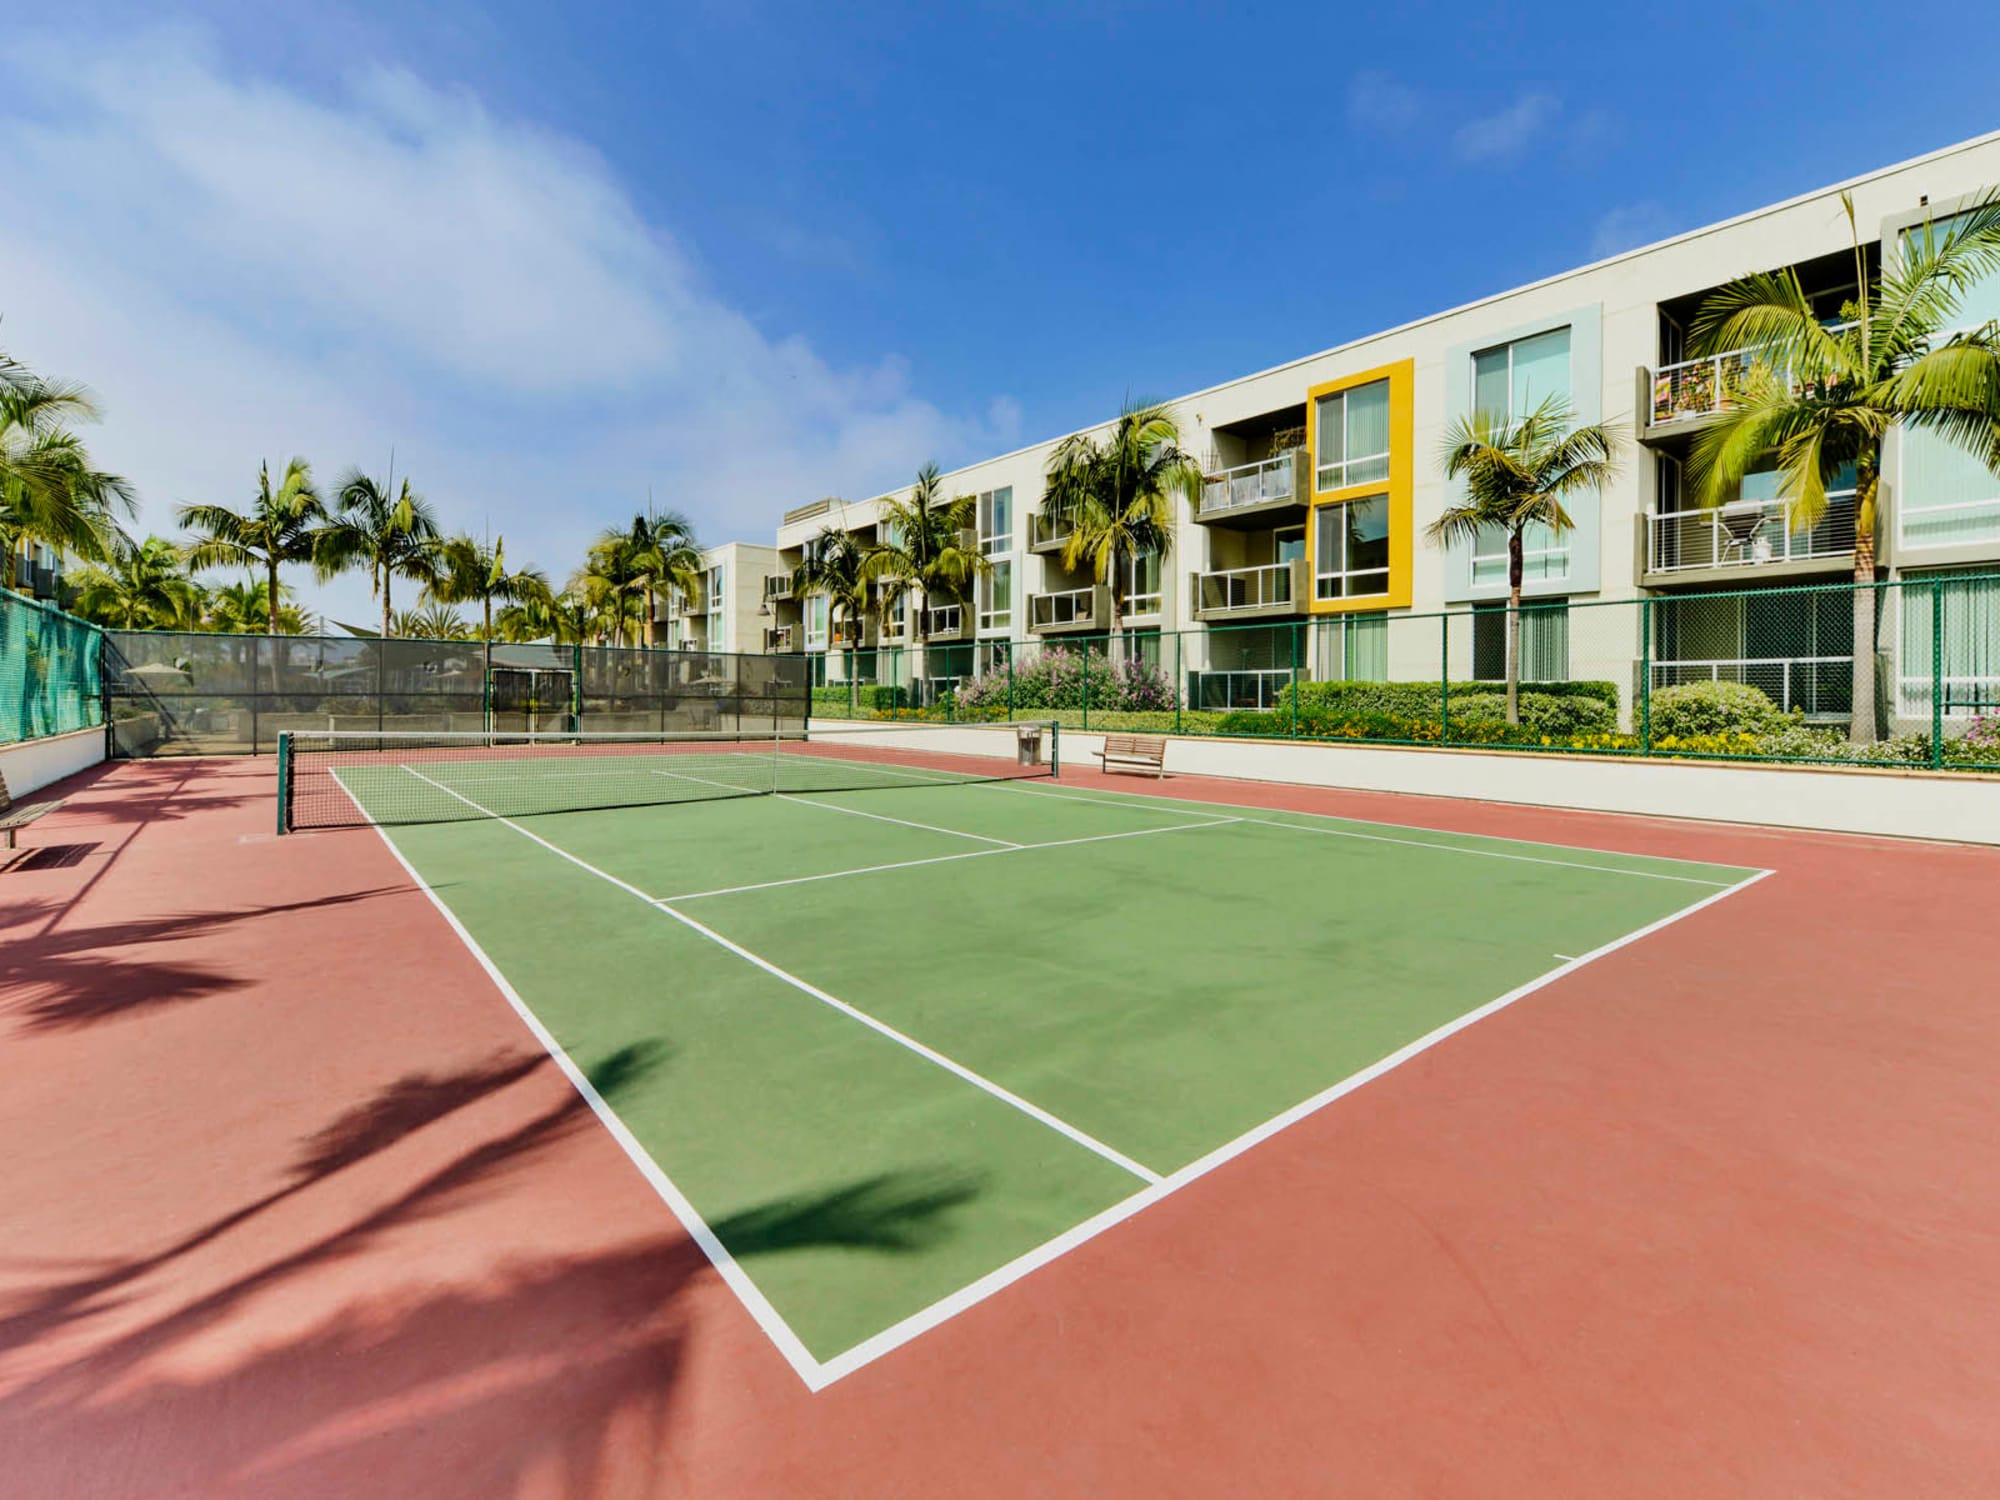 Well-maintained tennis courts at The Tides at Marina Harbor in Marina Del Rey, California